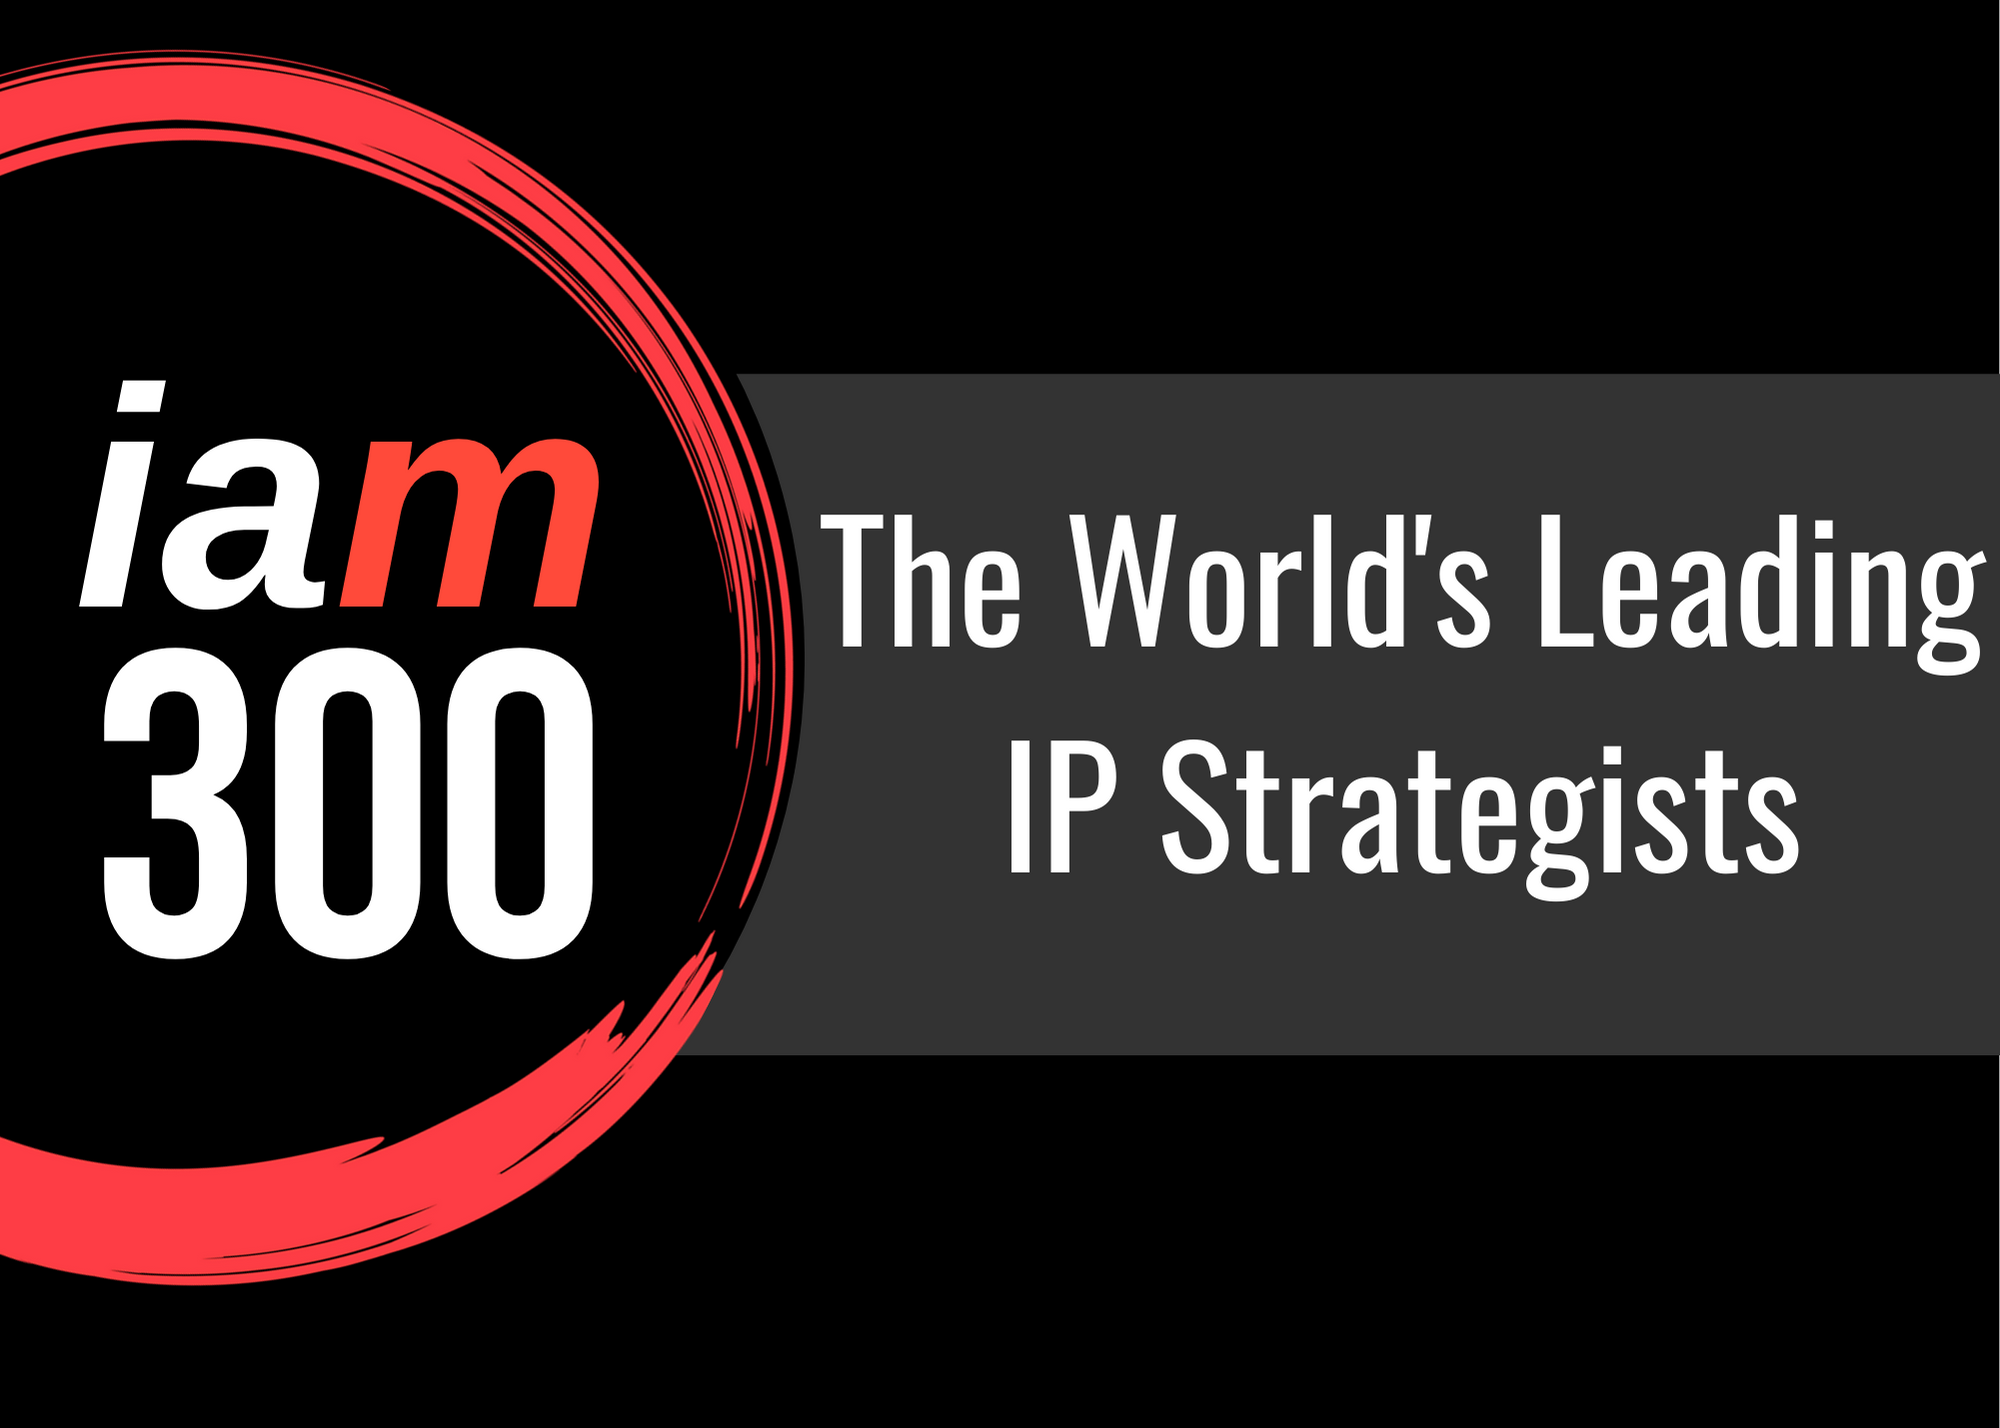 John Russell Once Again Recognized in IAM Strategy – The World's Leading IP Strategists